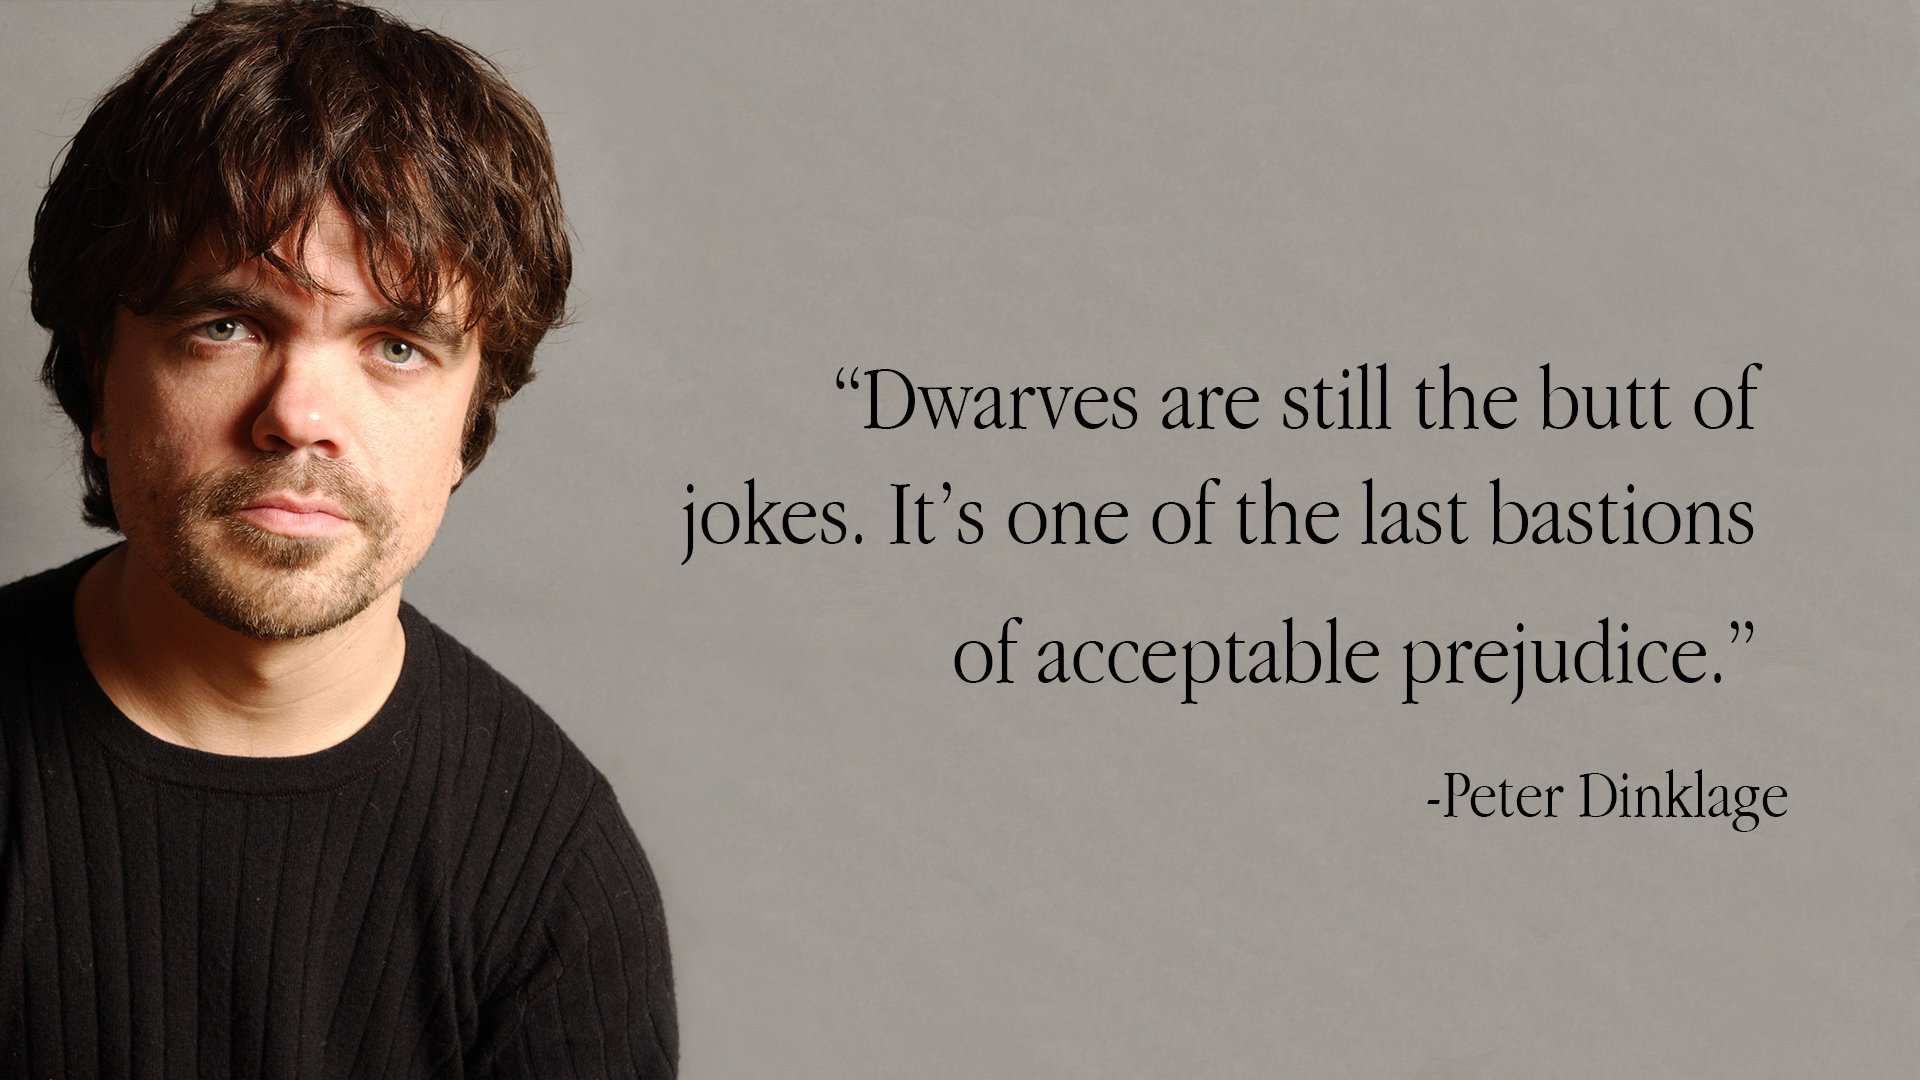 """One of the last bastions of acceptable prejudice."" -Peter Dinklage. """